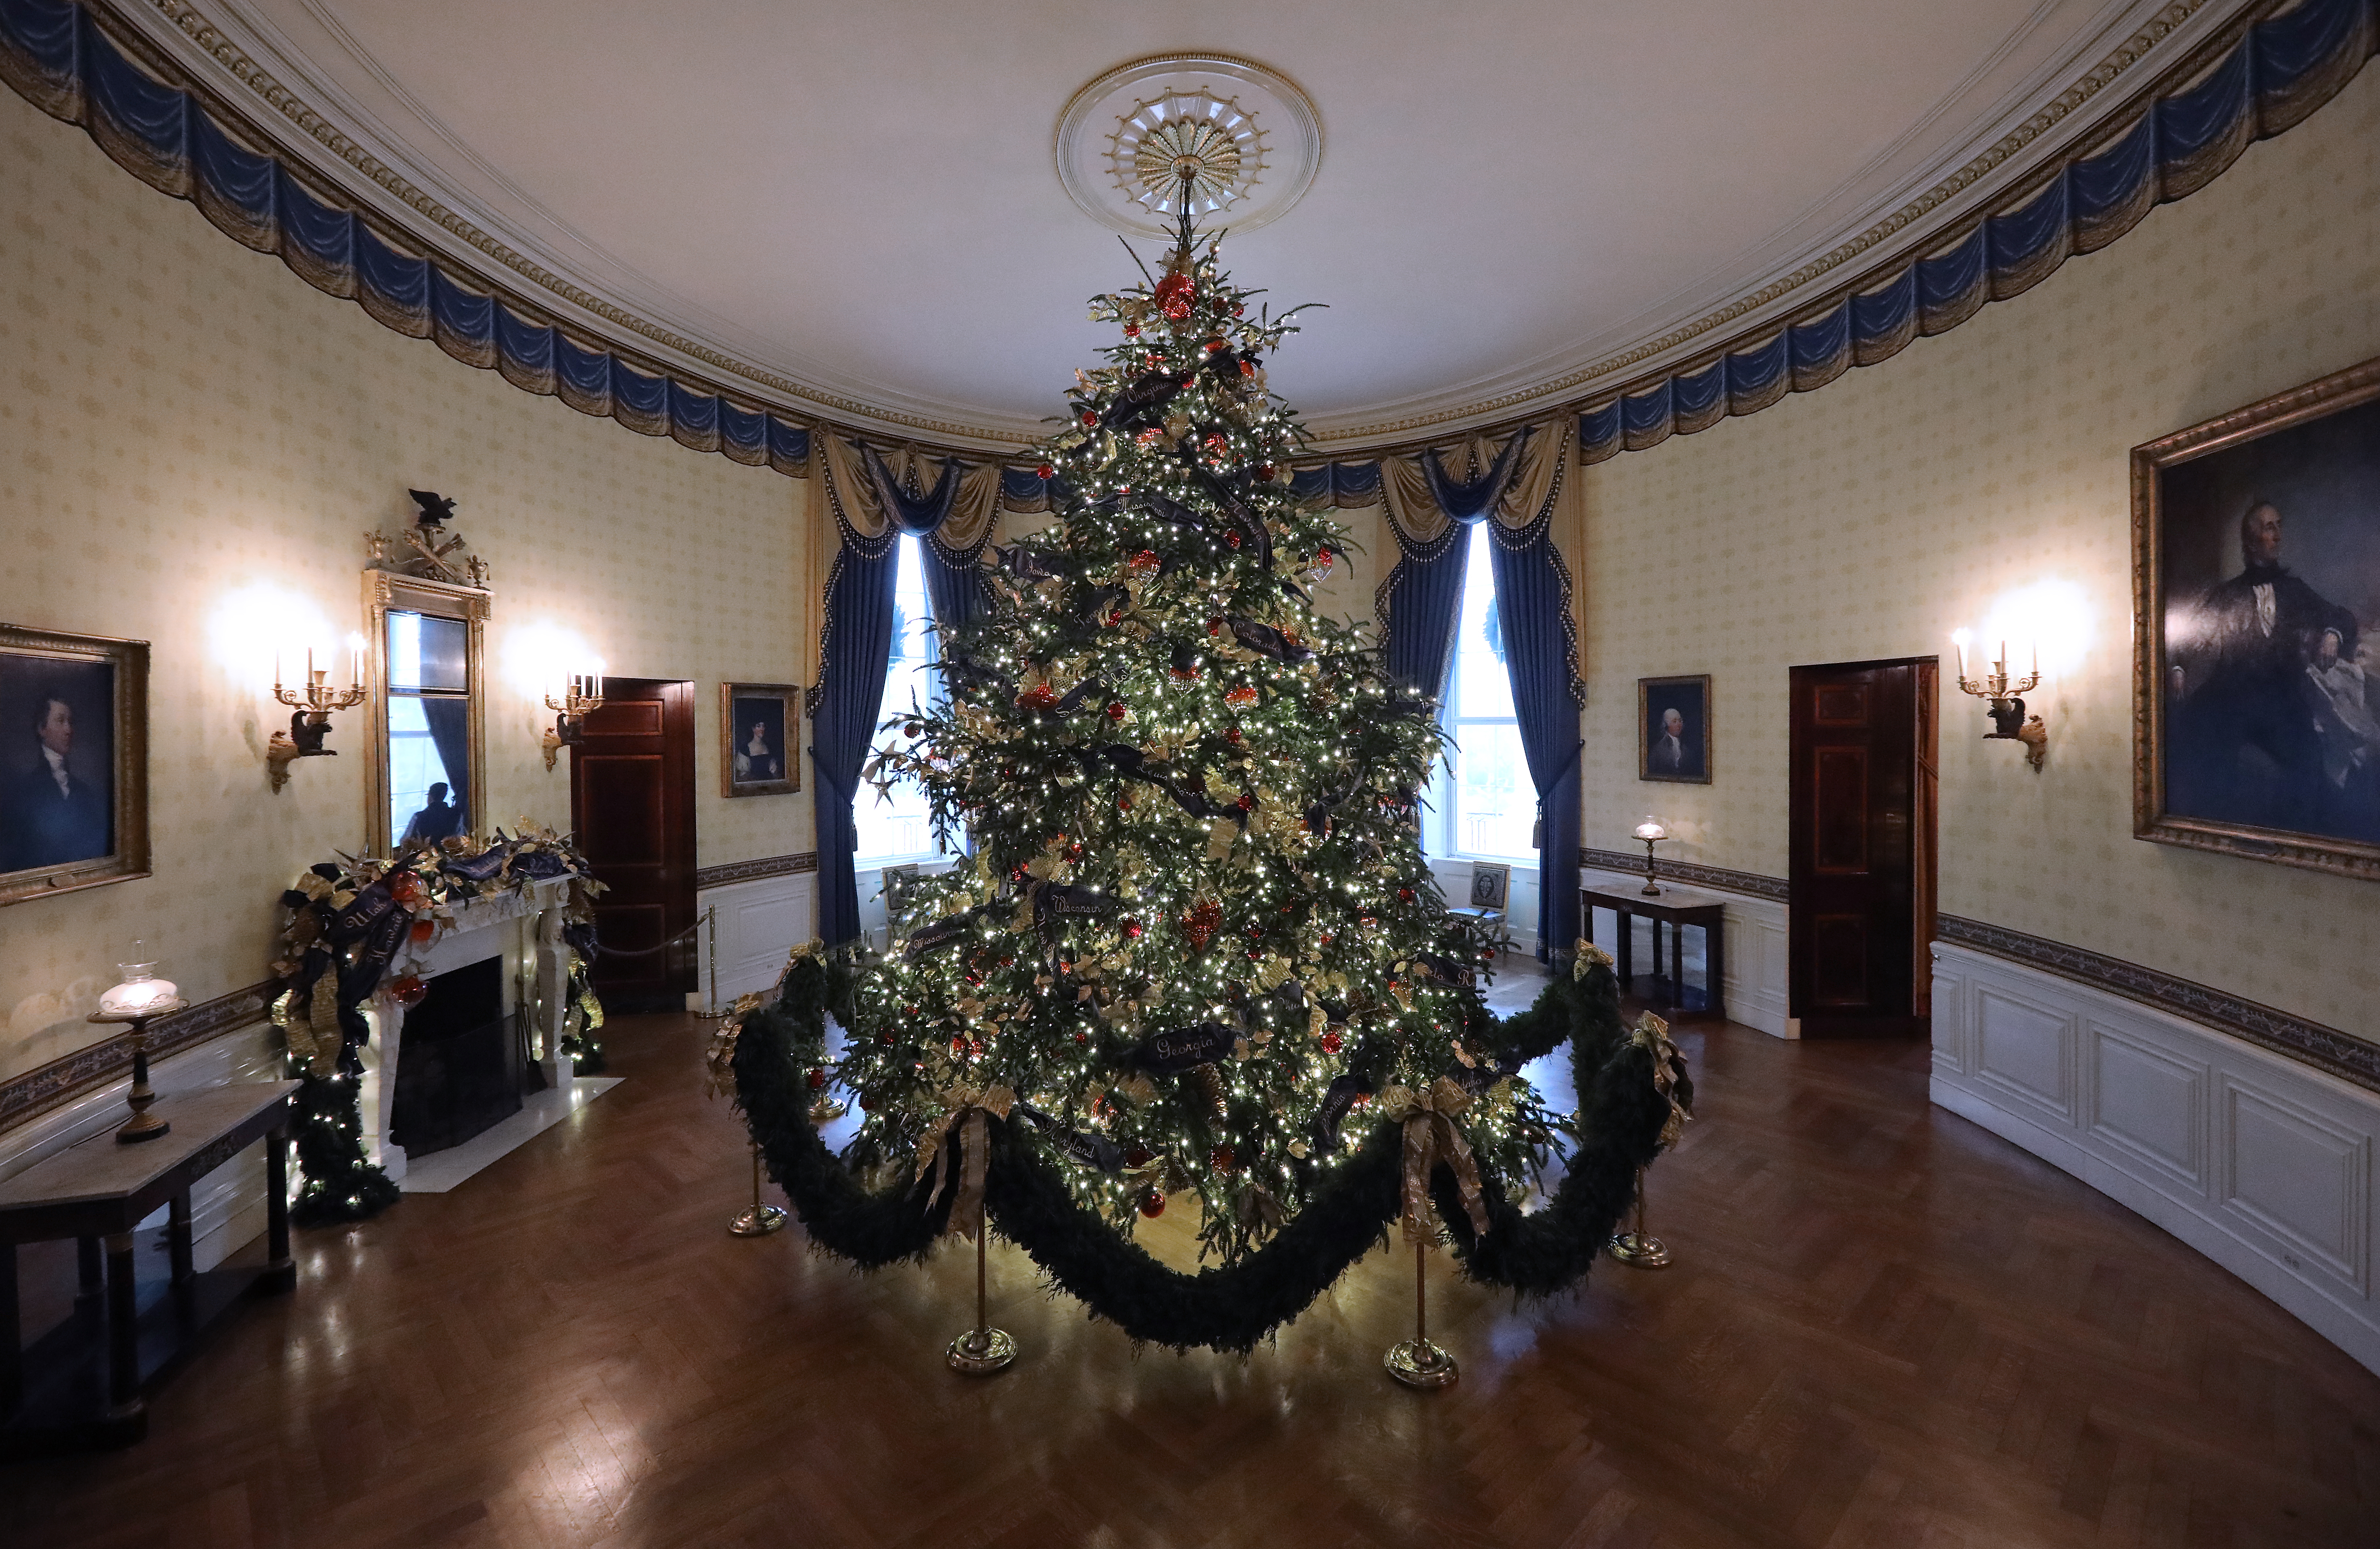 At 18 feet tall, the official White House Christmas is dressed in over 500 feet of blue velvet ribbon embroidered in gold with each state and territory, on display inside the Blue Room at the White House November 26, 2018 in Washington, DC. (Credit: Chip Somodevilla/Getty Images)